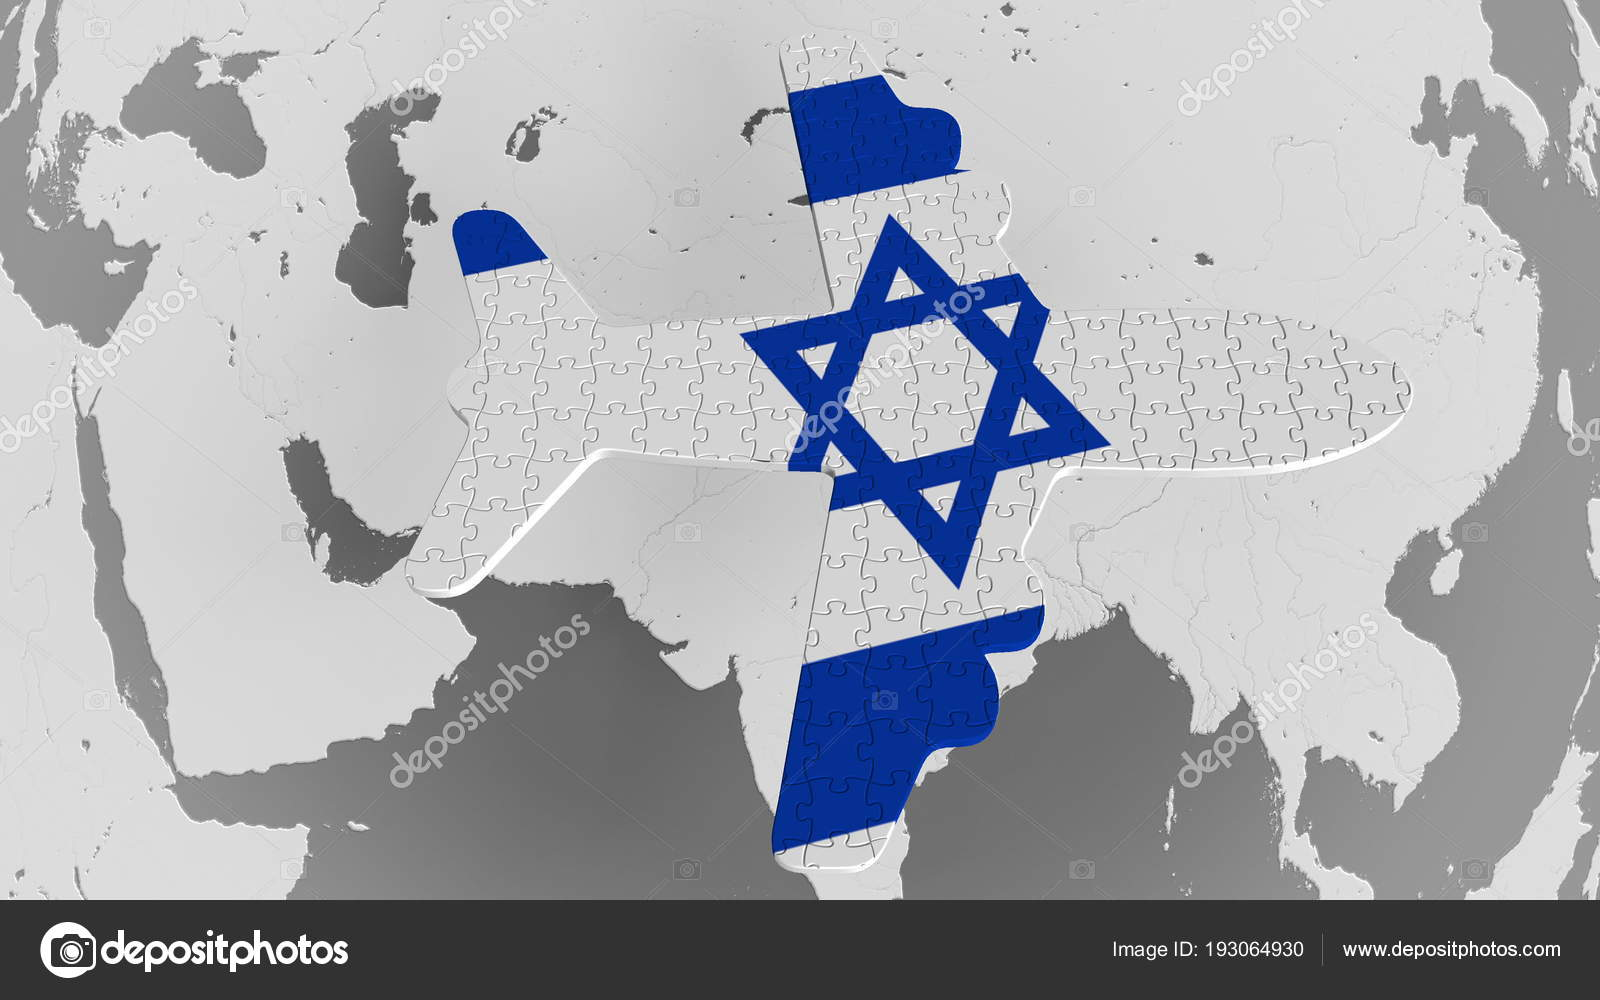 Airplane puzzle featuring flag of Israel against the world map ...